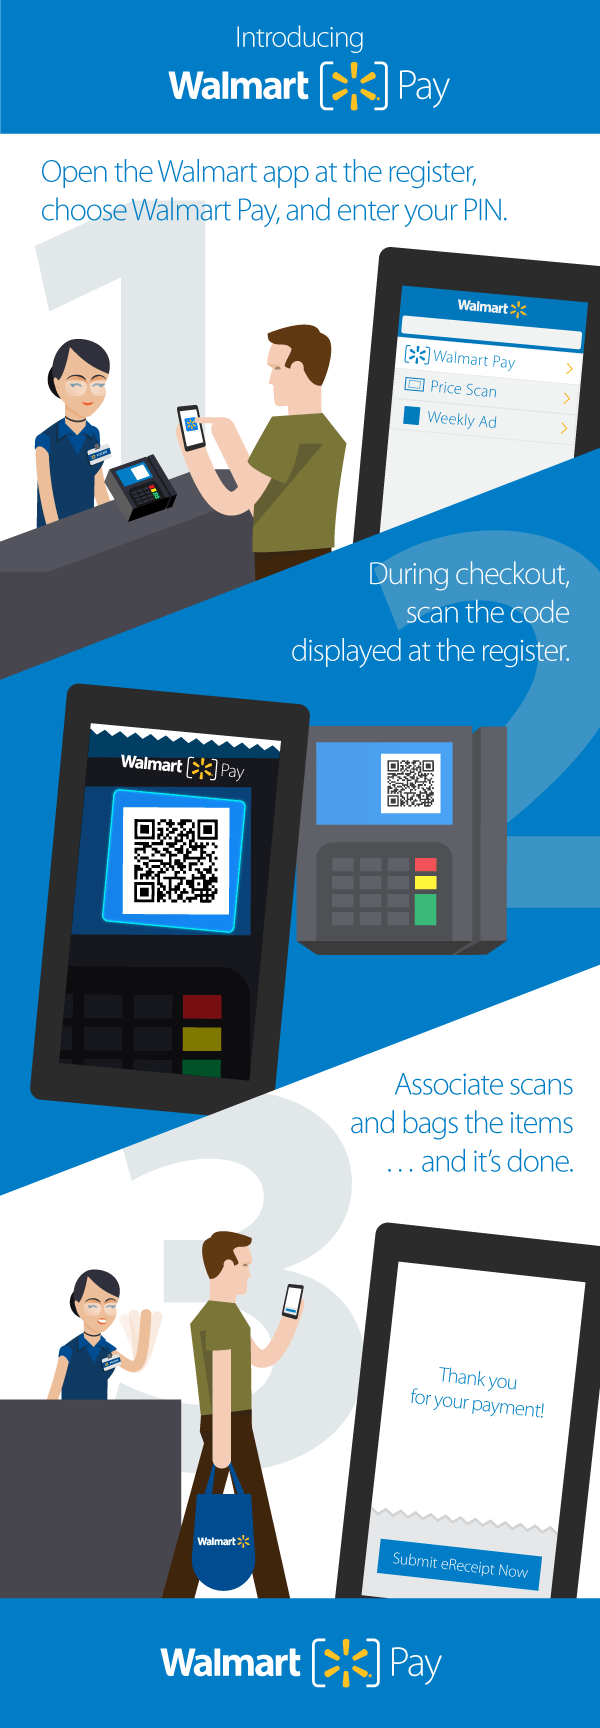 Walmart Pay in three steps - Open, Scan, Done